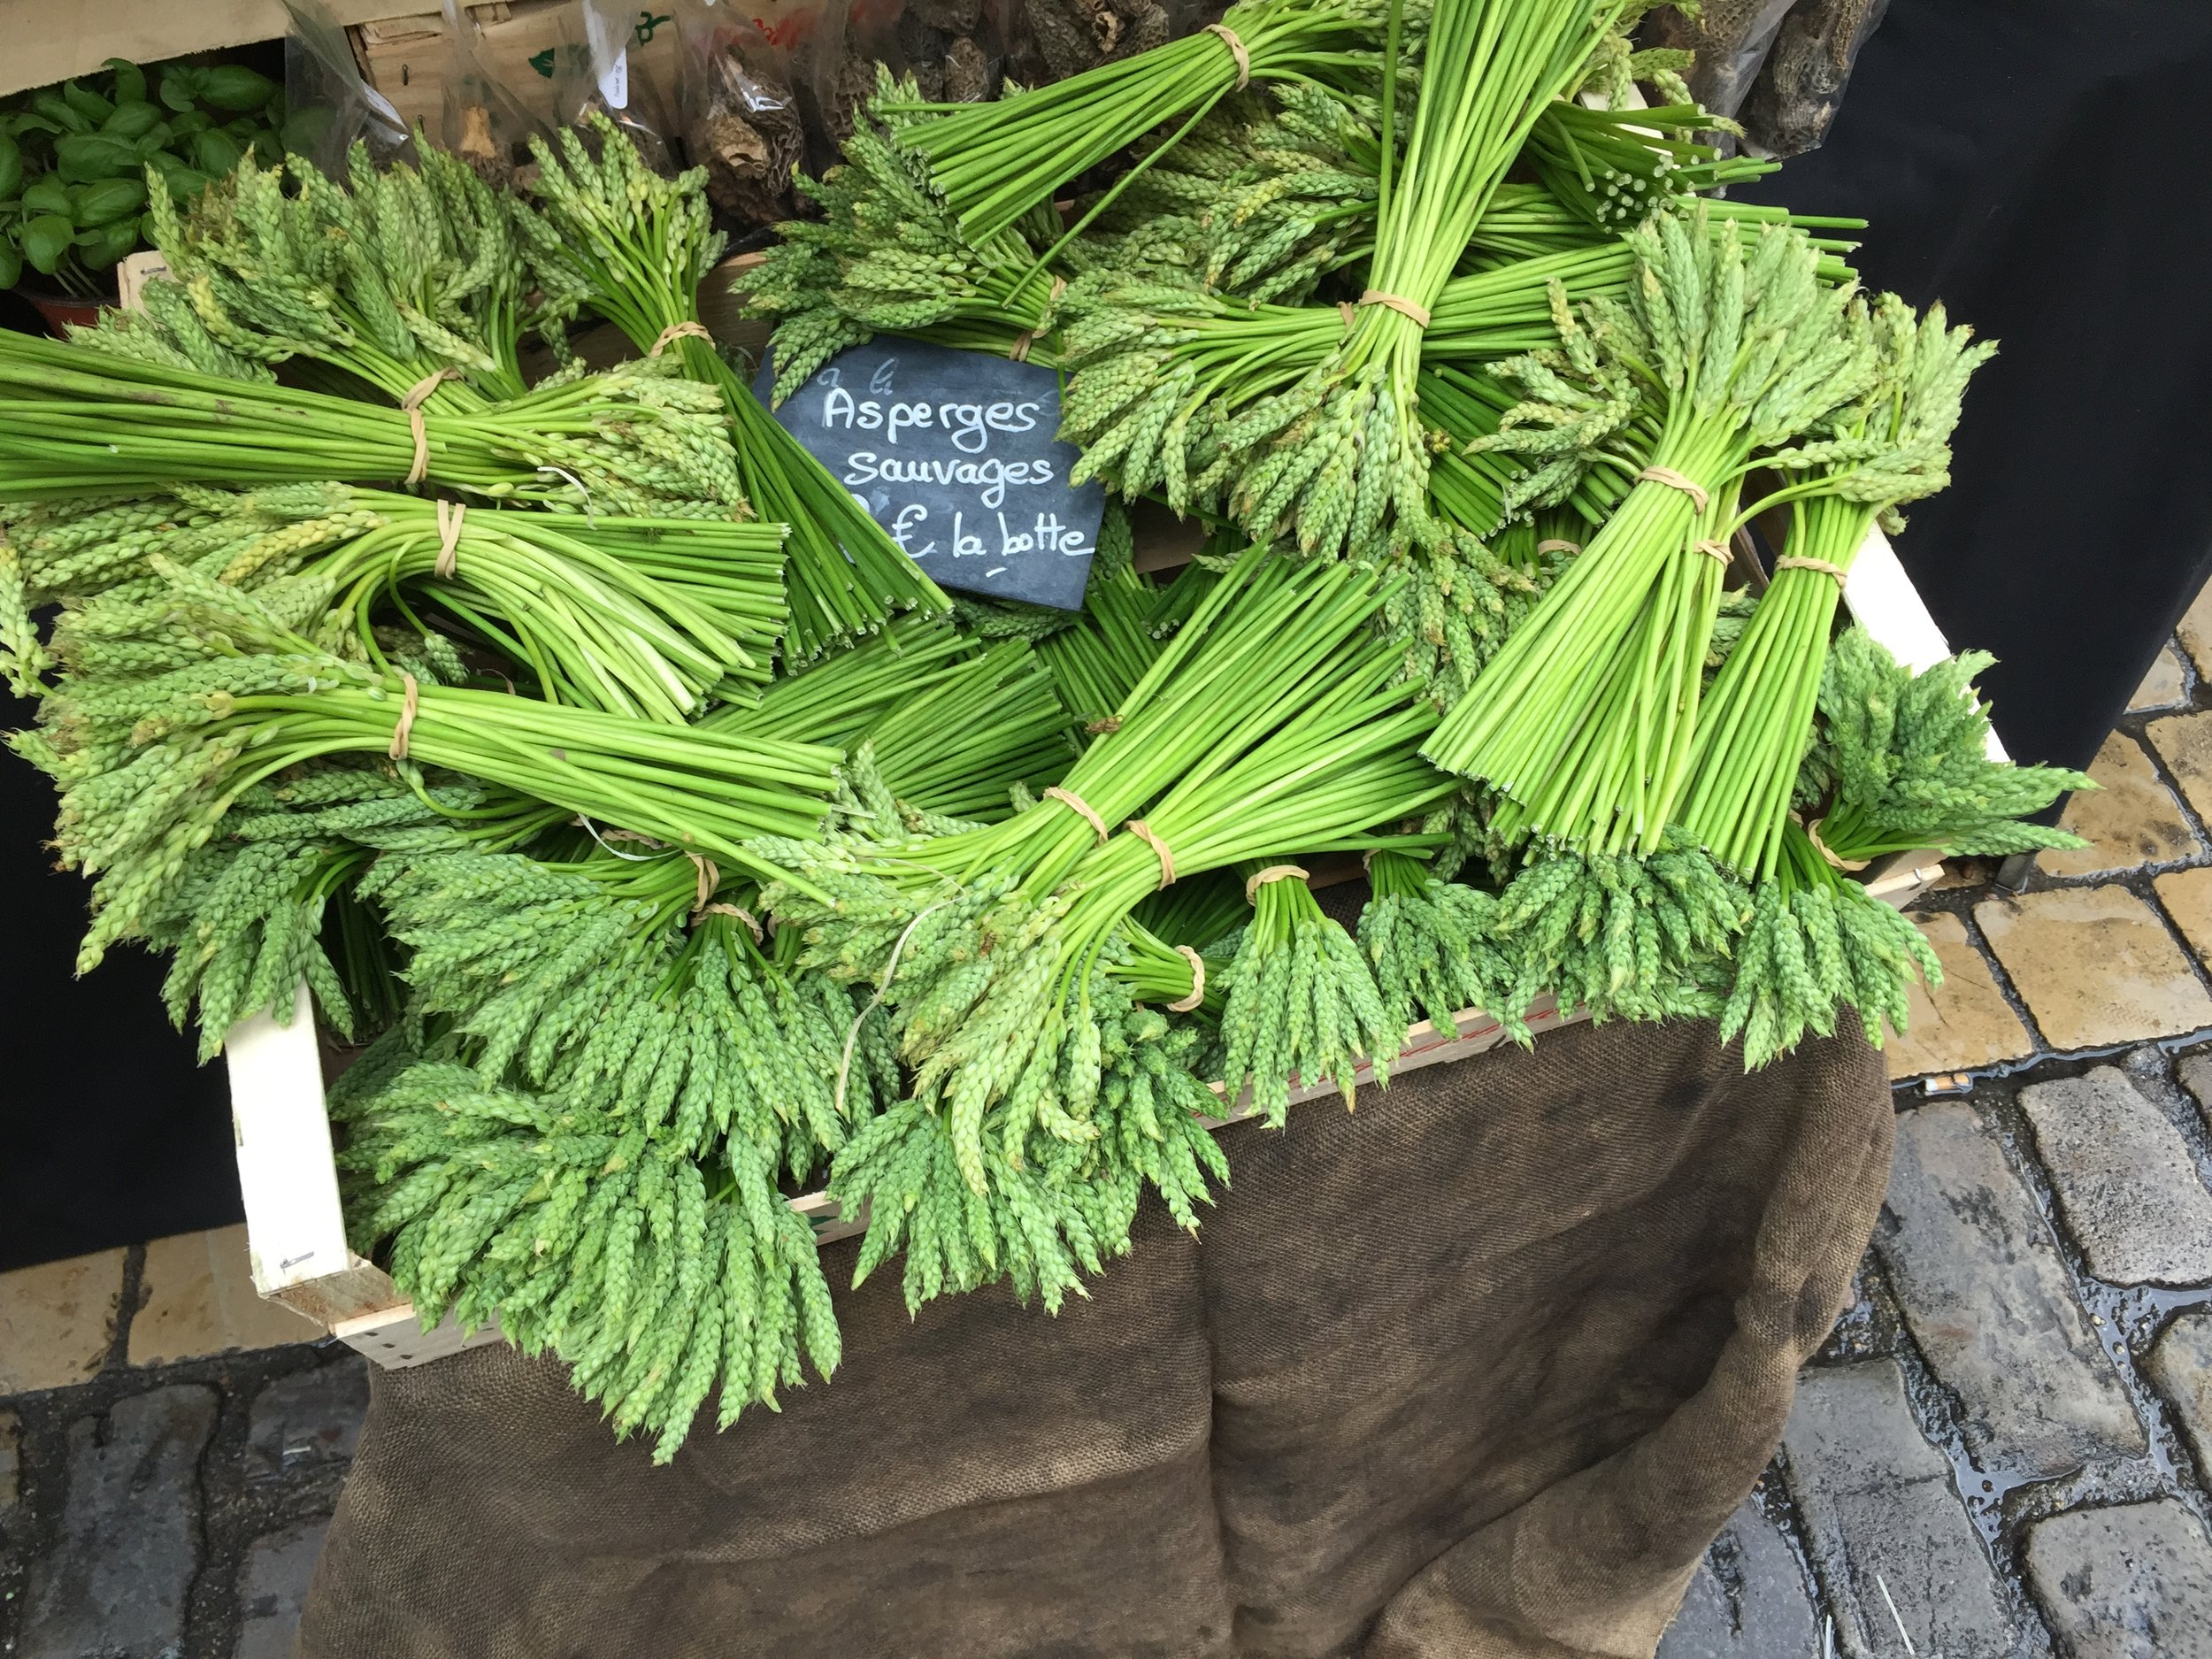 Wild Asparagus at the market in  Beaune, France